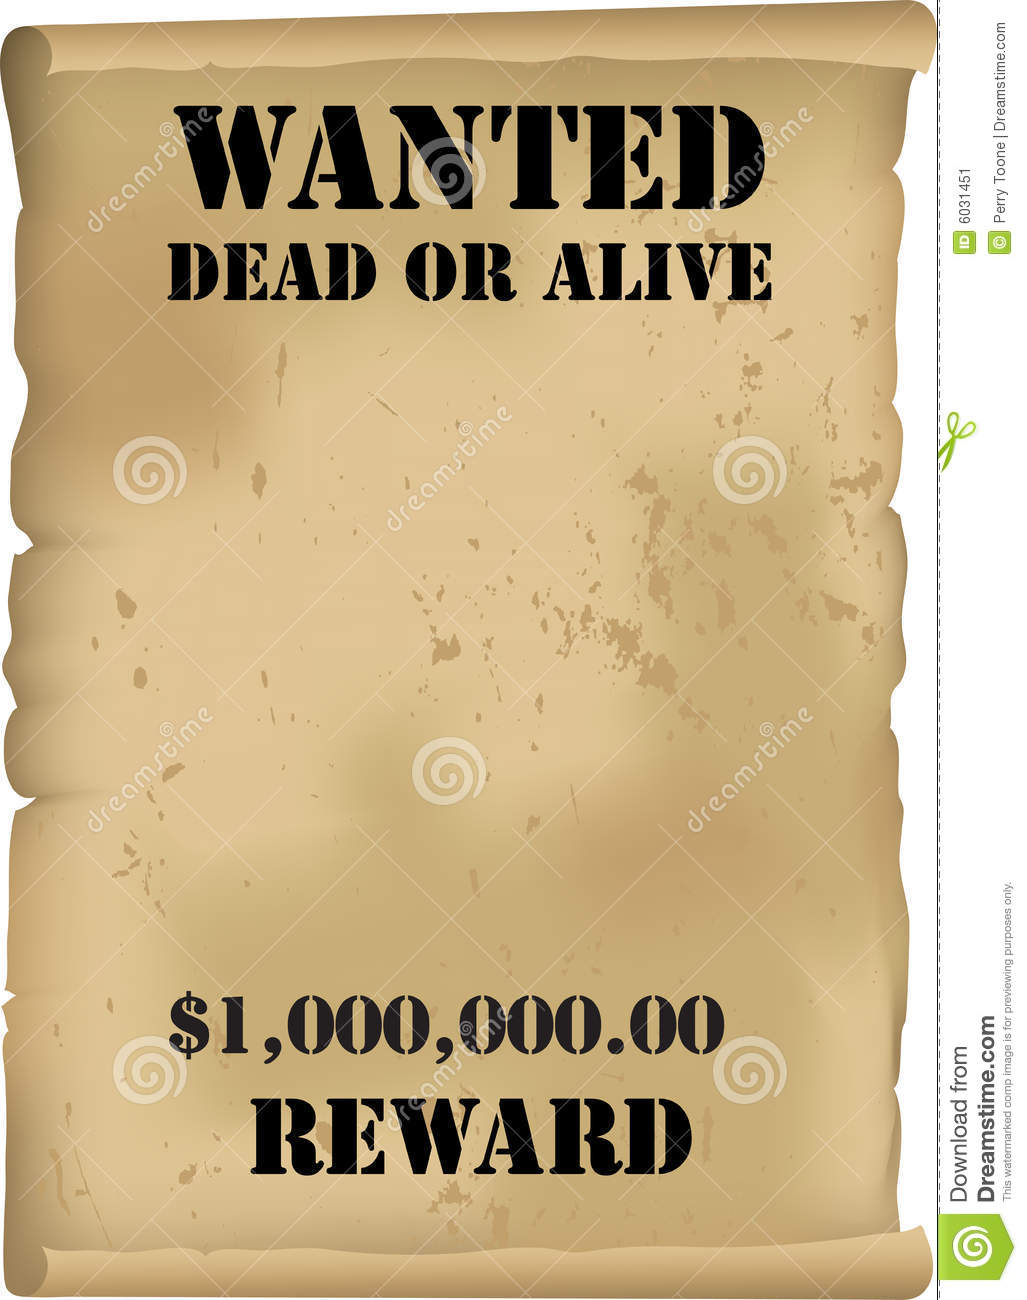 Most Wanted Poster Template Images %E6%B5%B7%E6%8A%